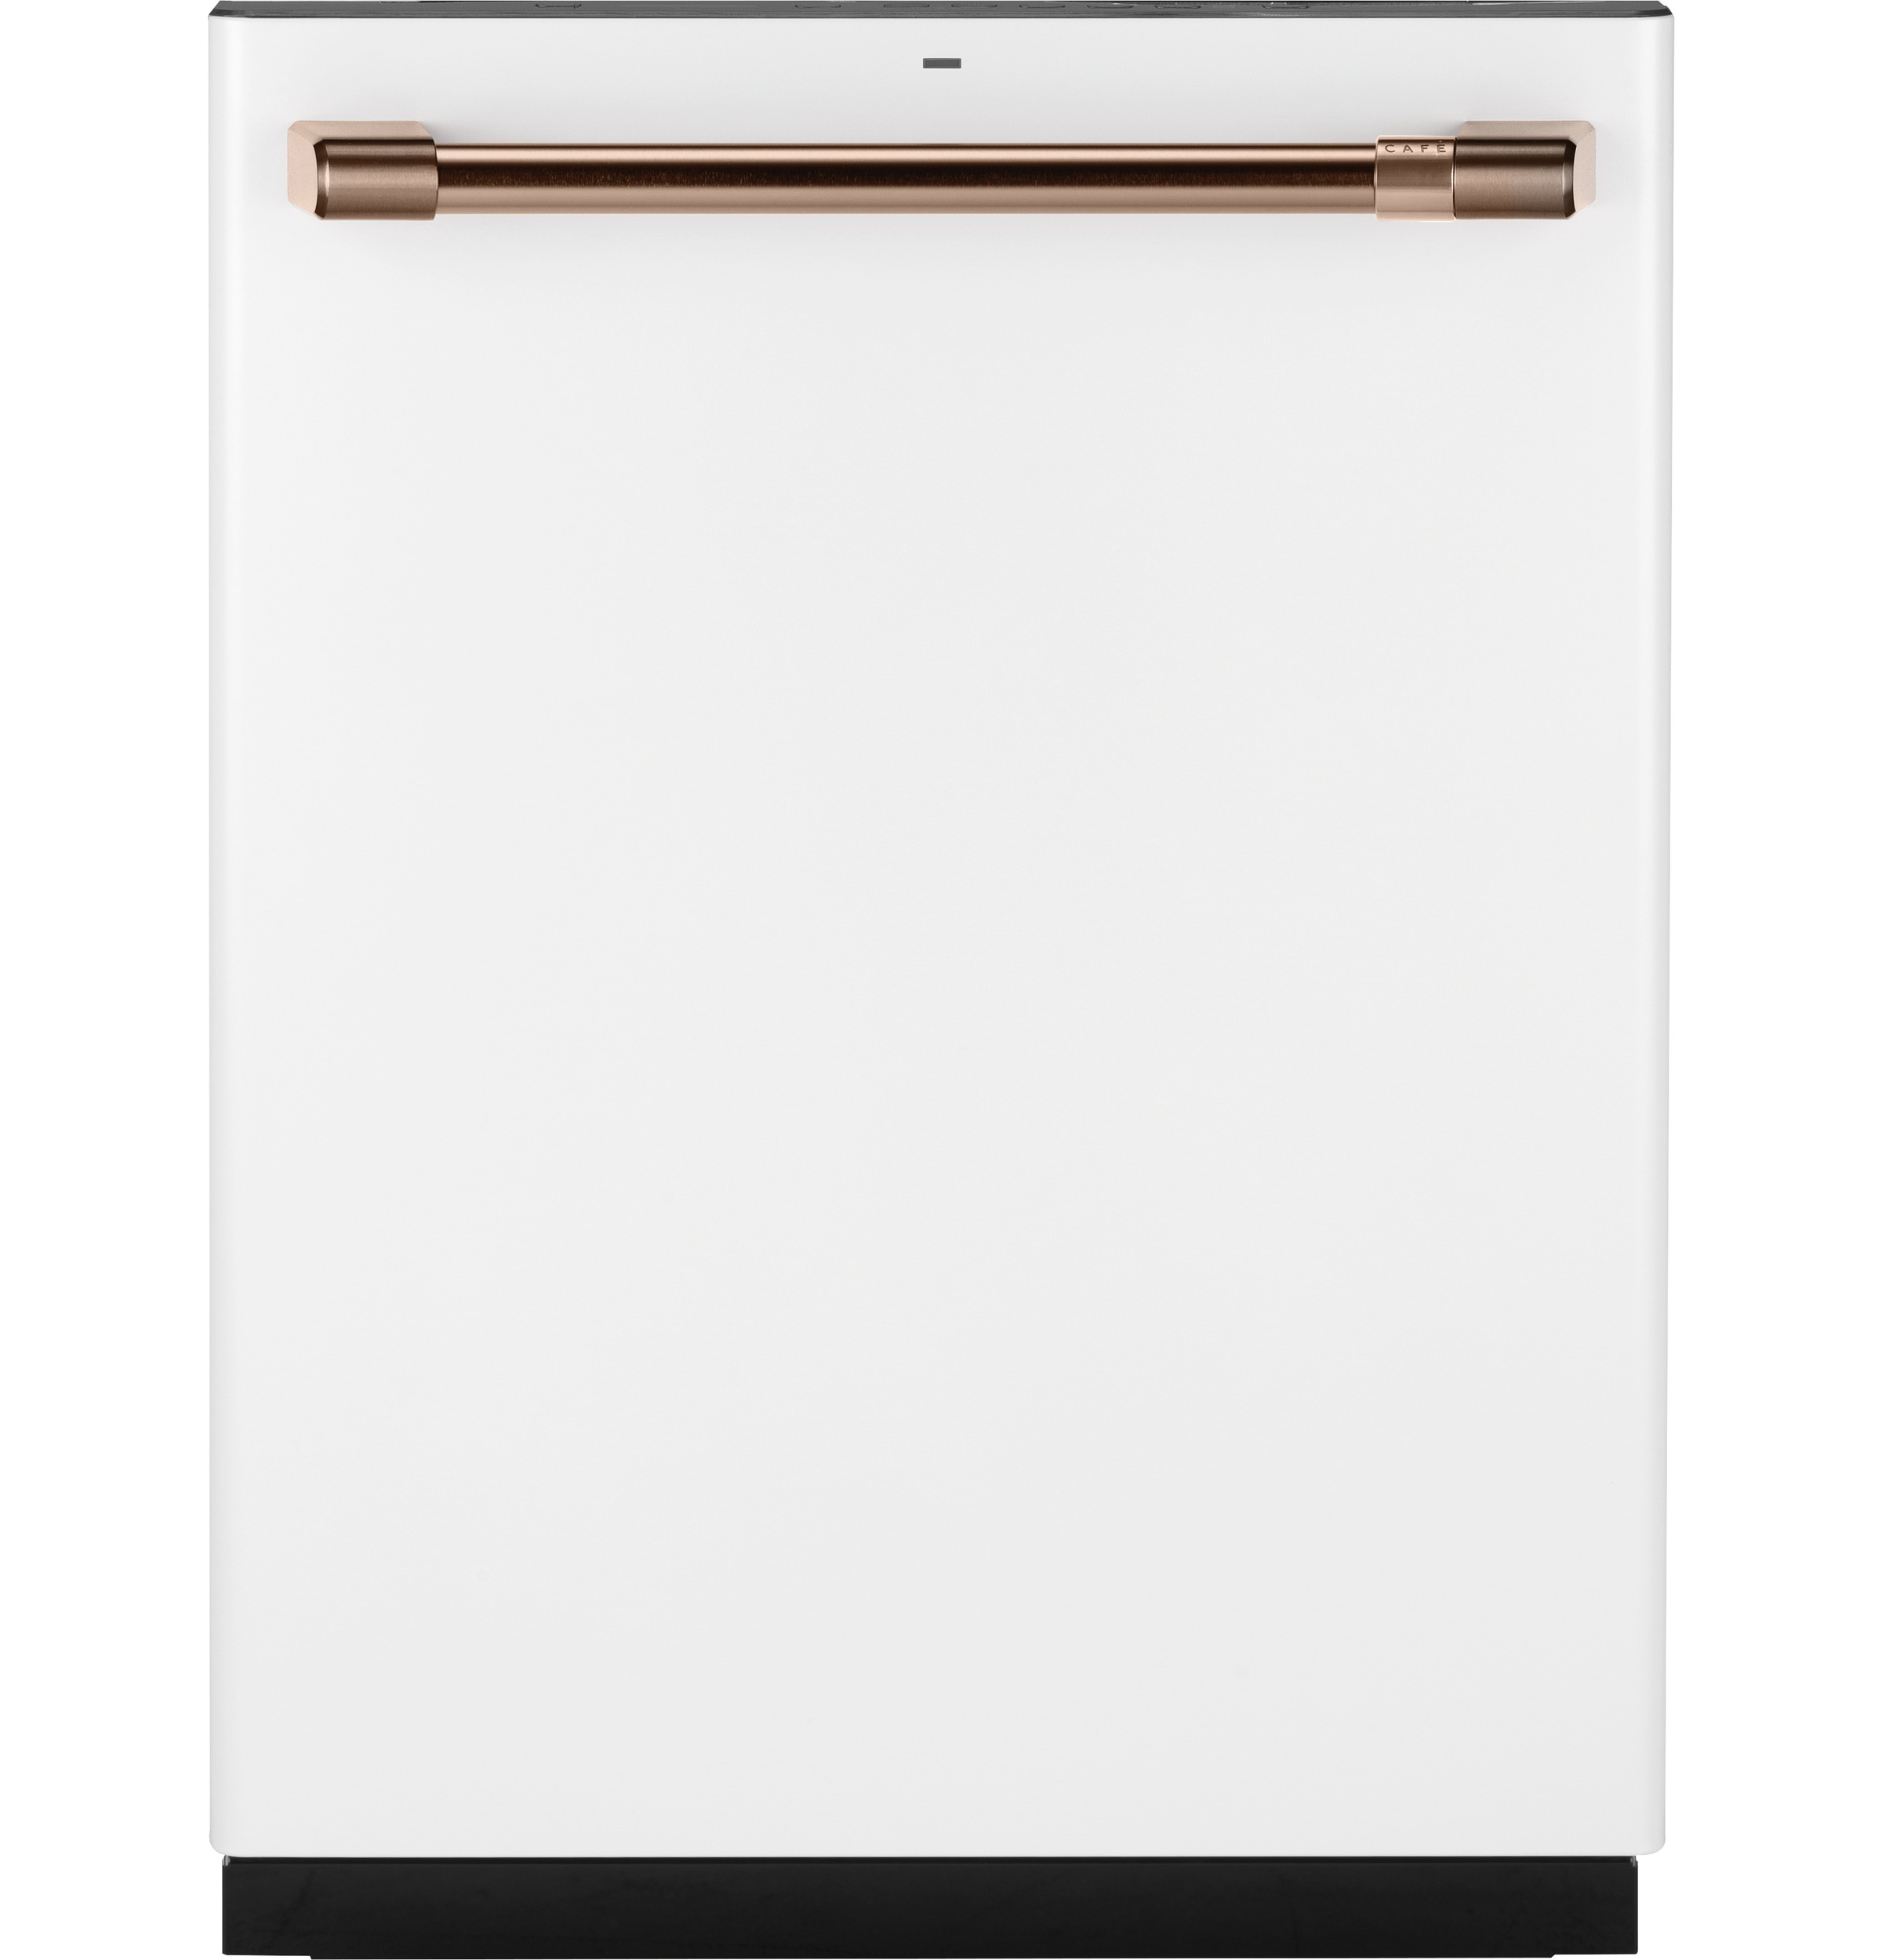 Model: CDT836P4MW2 | Café™ Stainless Interior Built-In Dishwasher with Hidden Controls